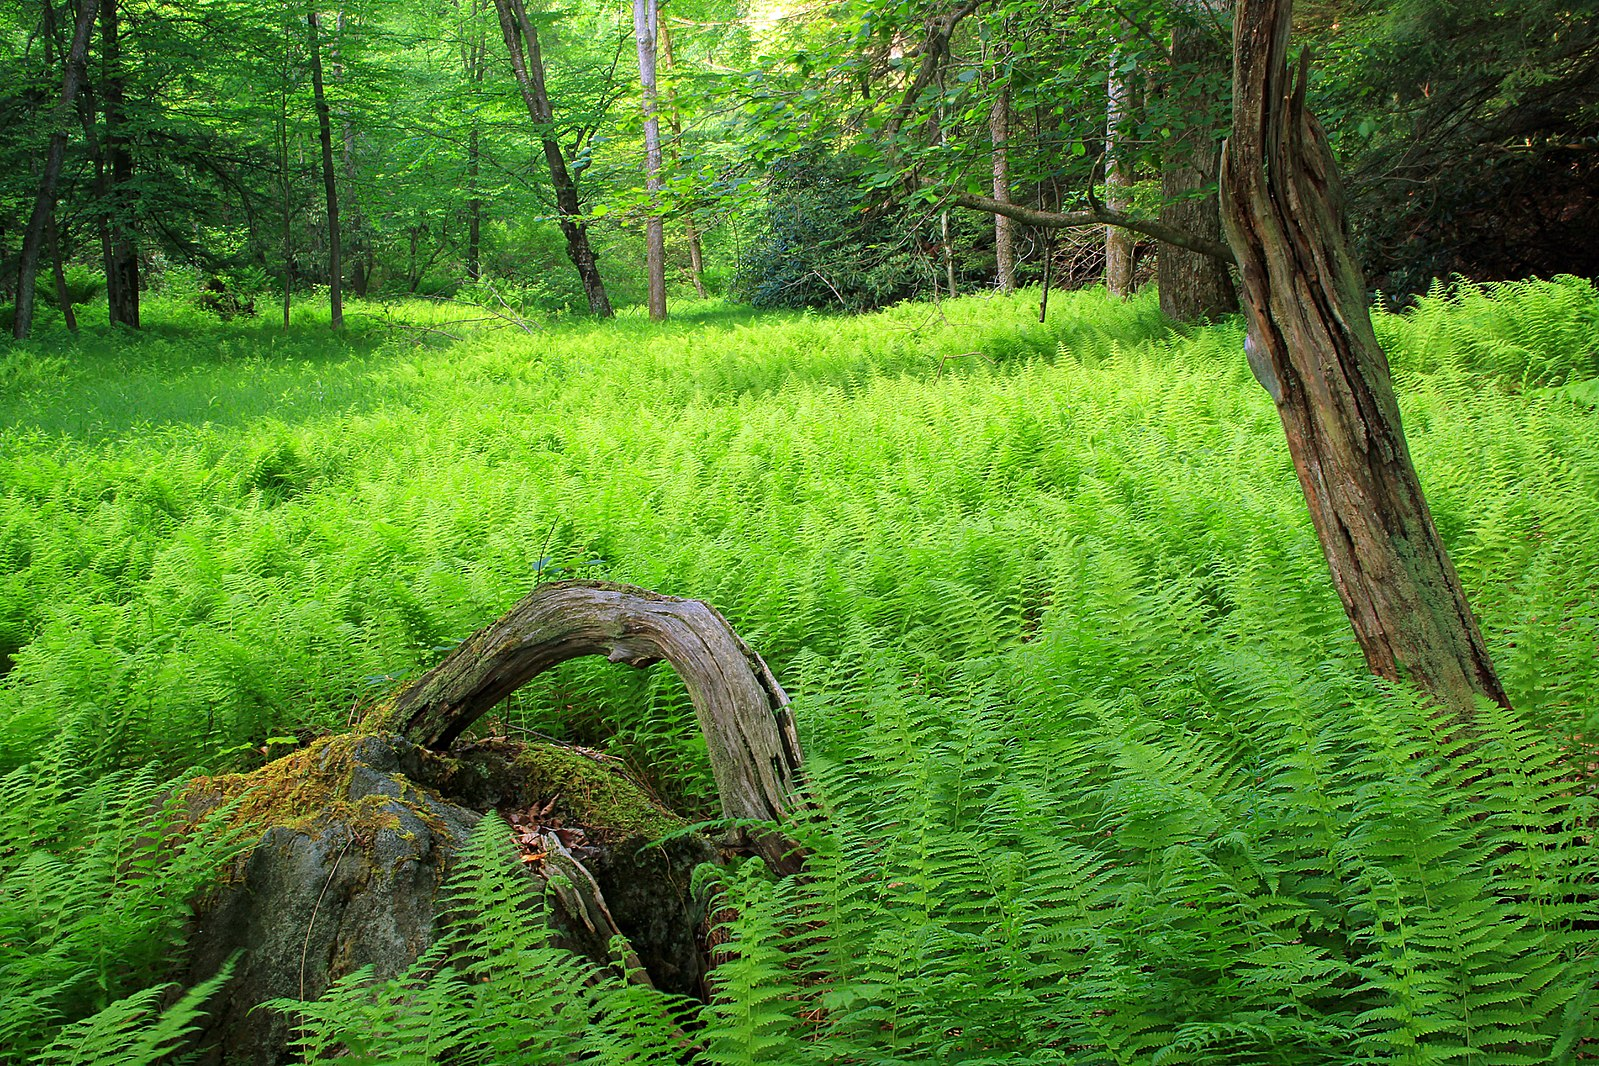 Ferns grow completely along the floor of a wood, several trees grow out from below the moss to above